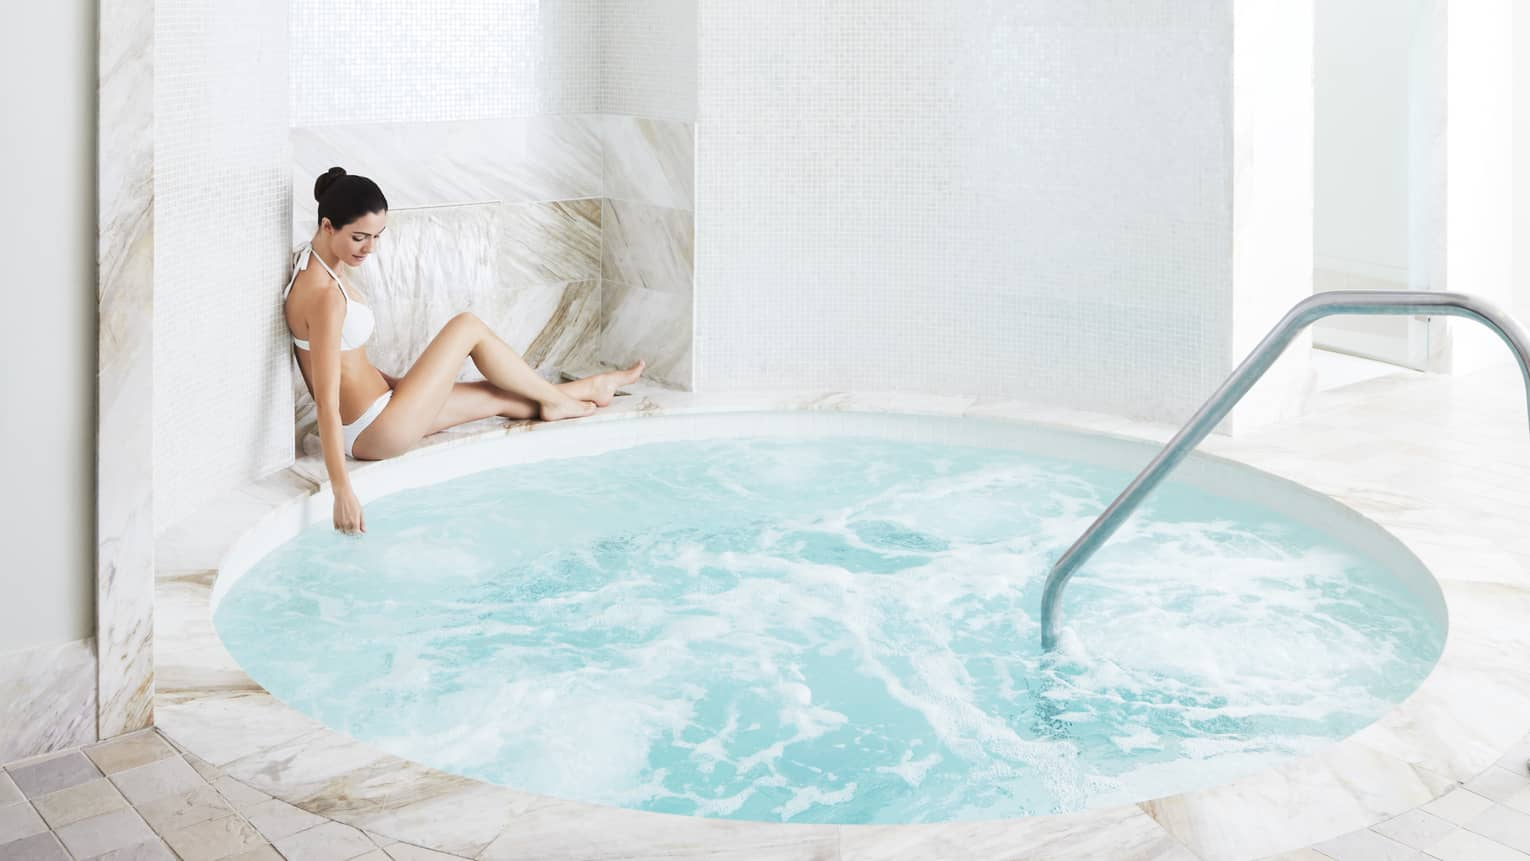 A woman relaxes by a marble hot tub in the spa